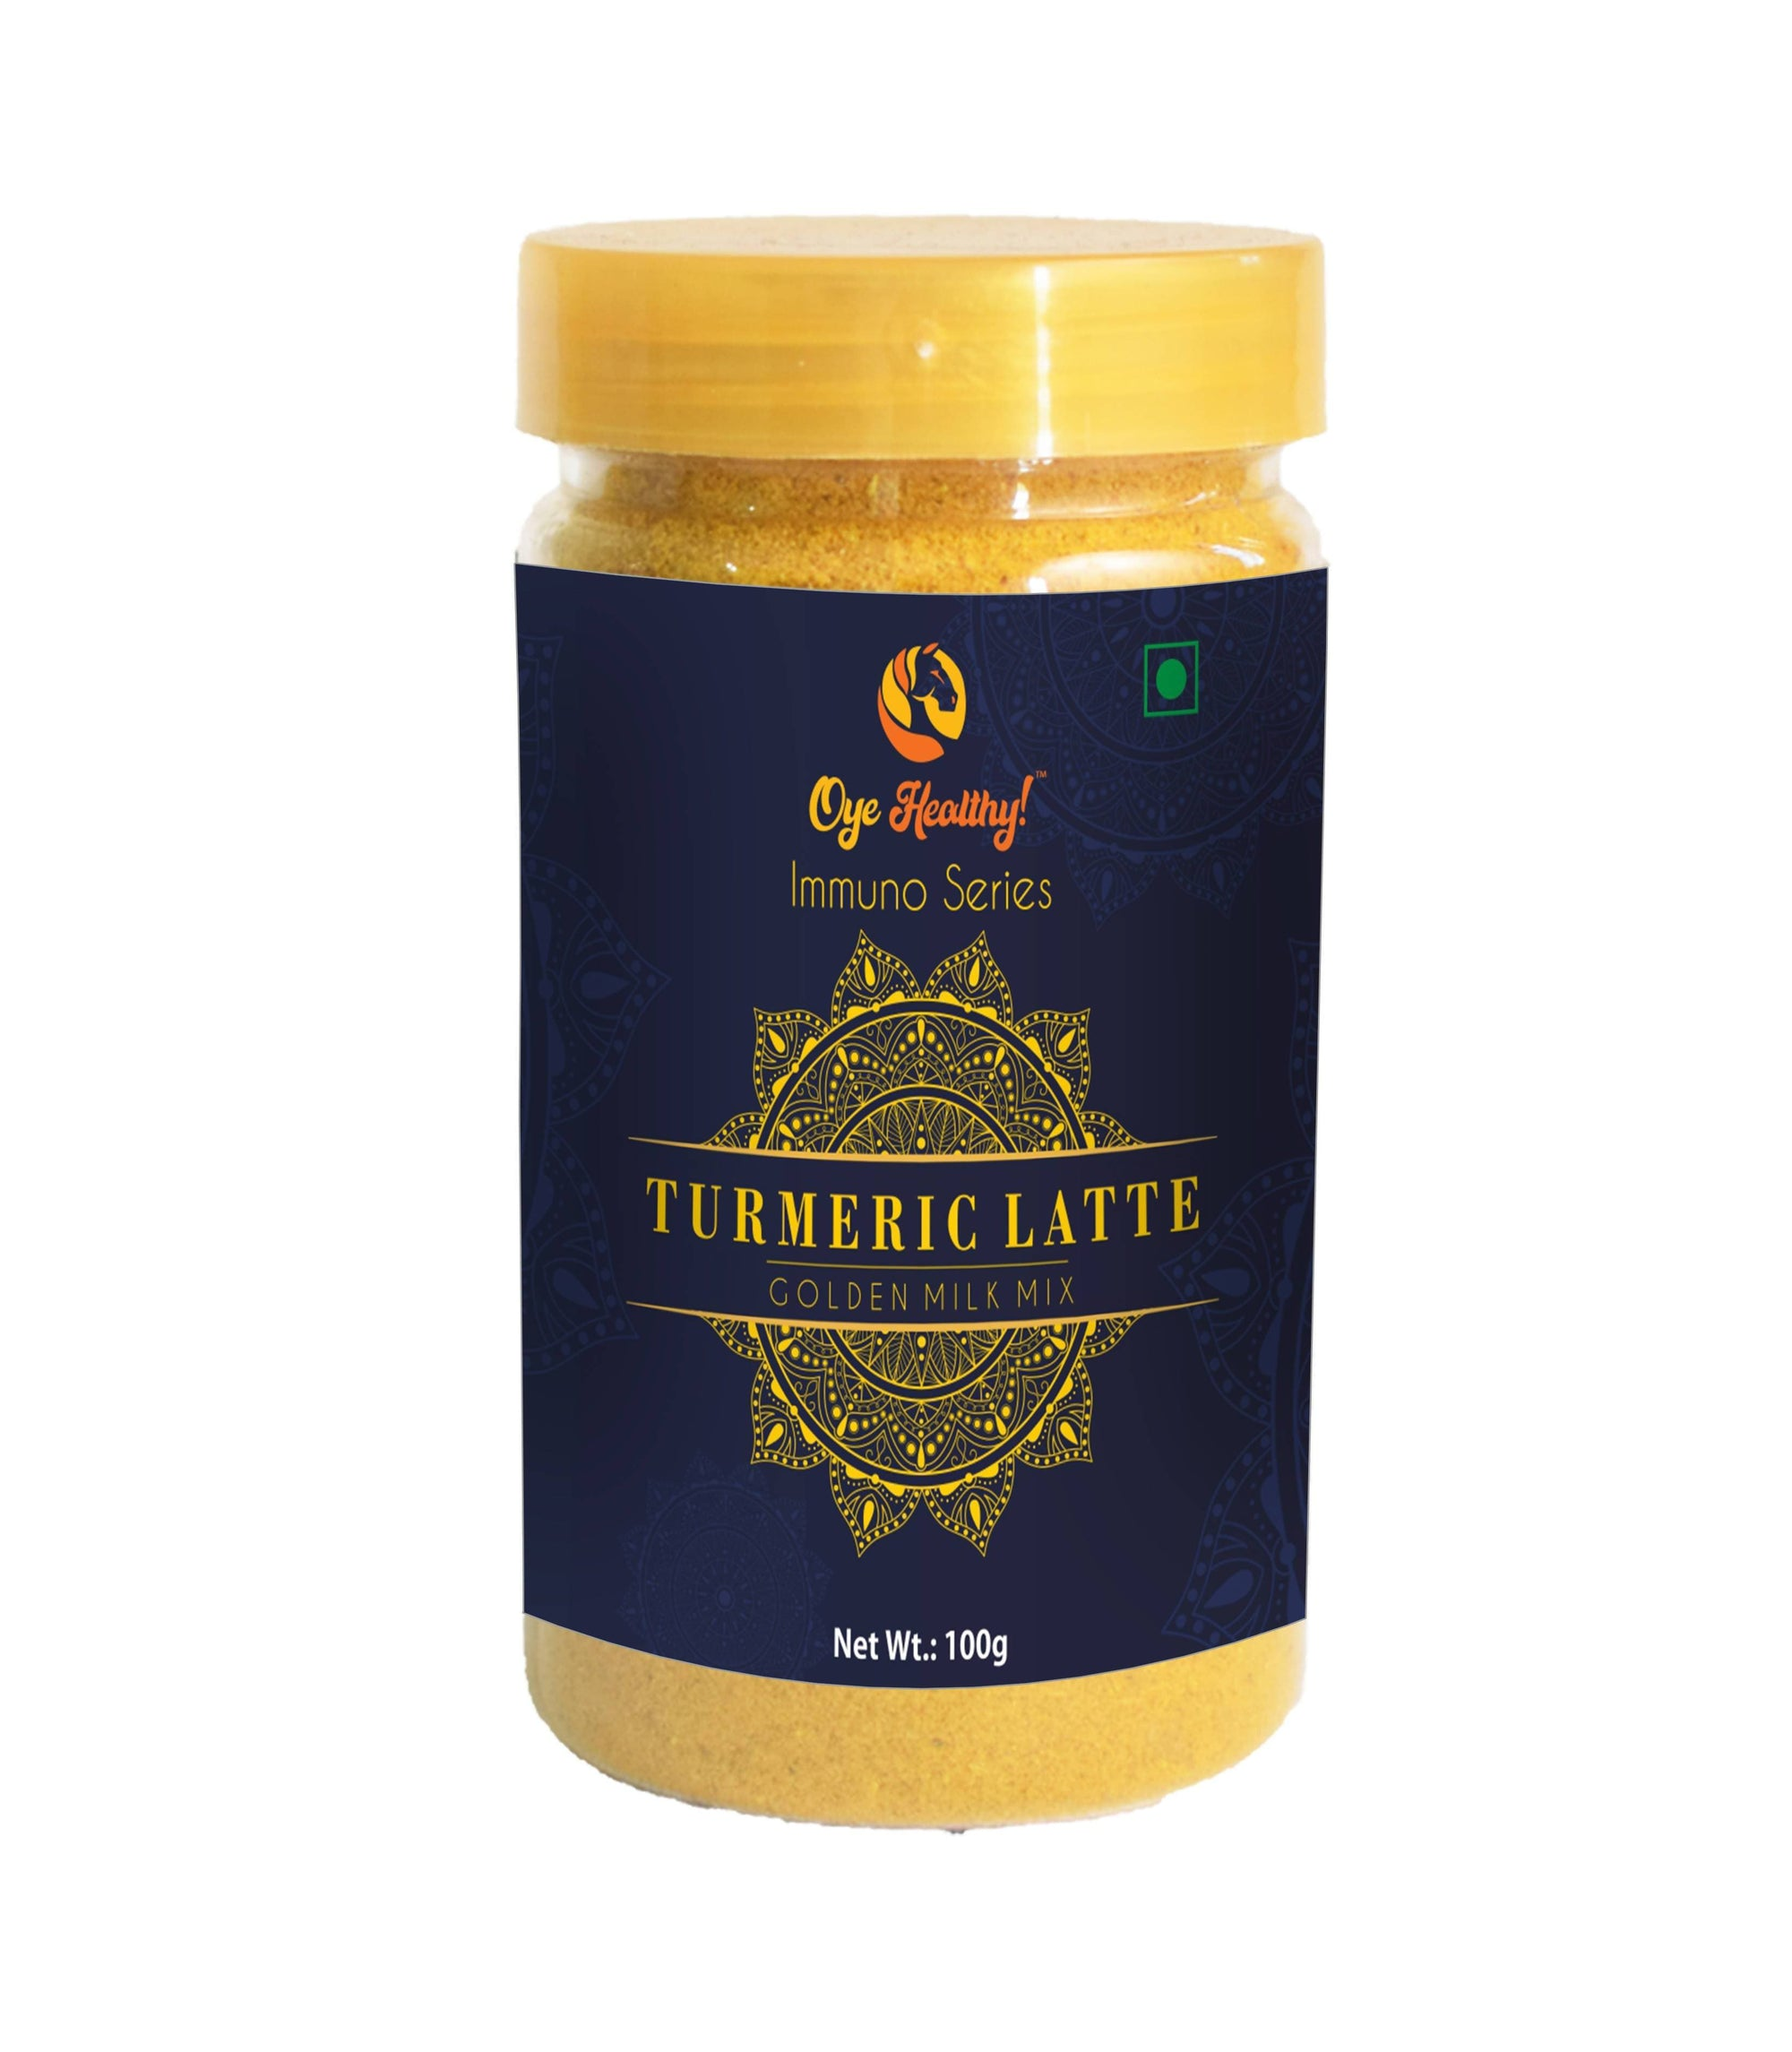 Oye Healthy Immuno Series Turmeric Latte Golden Milk Mix